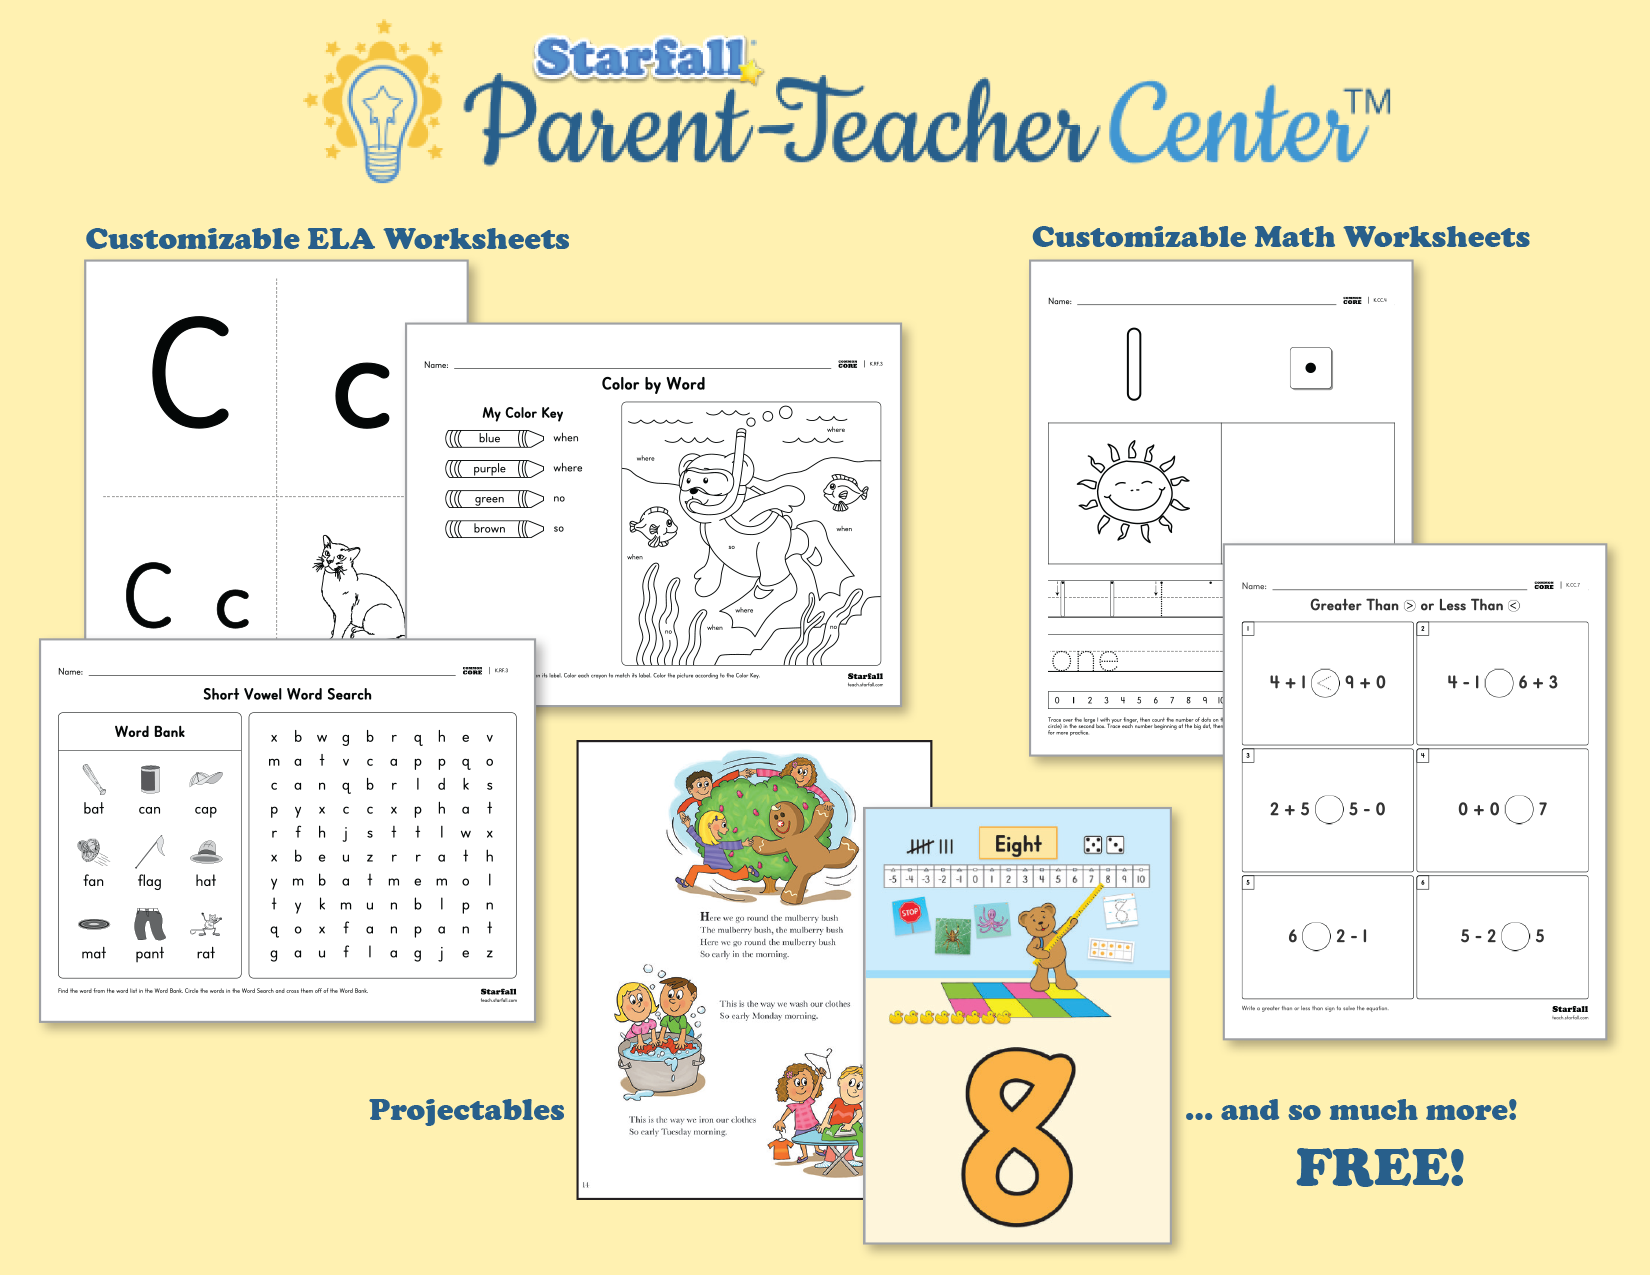 Have You Checked Out The New Starfall Parent Teacher